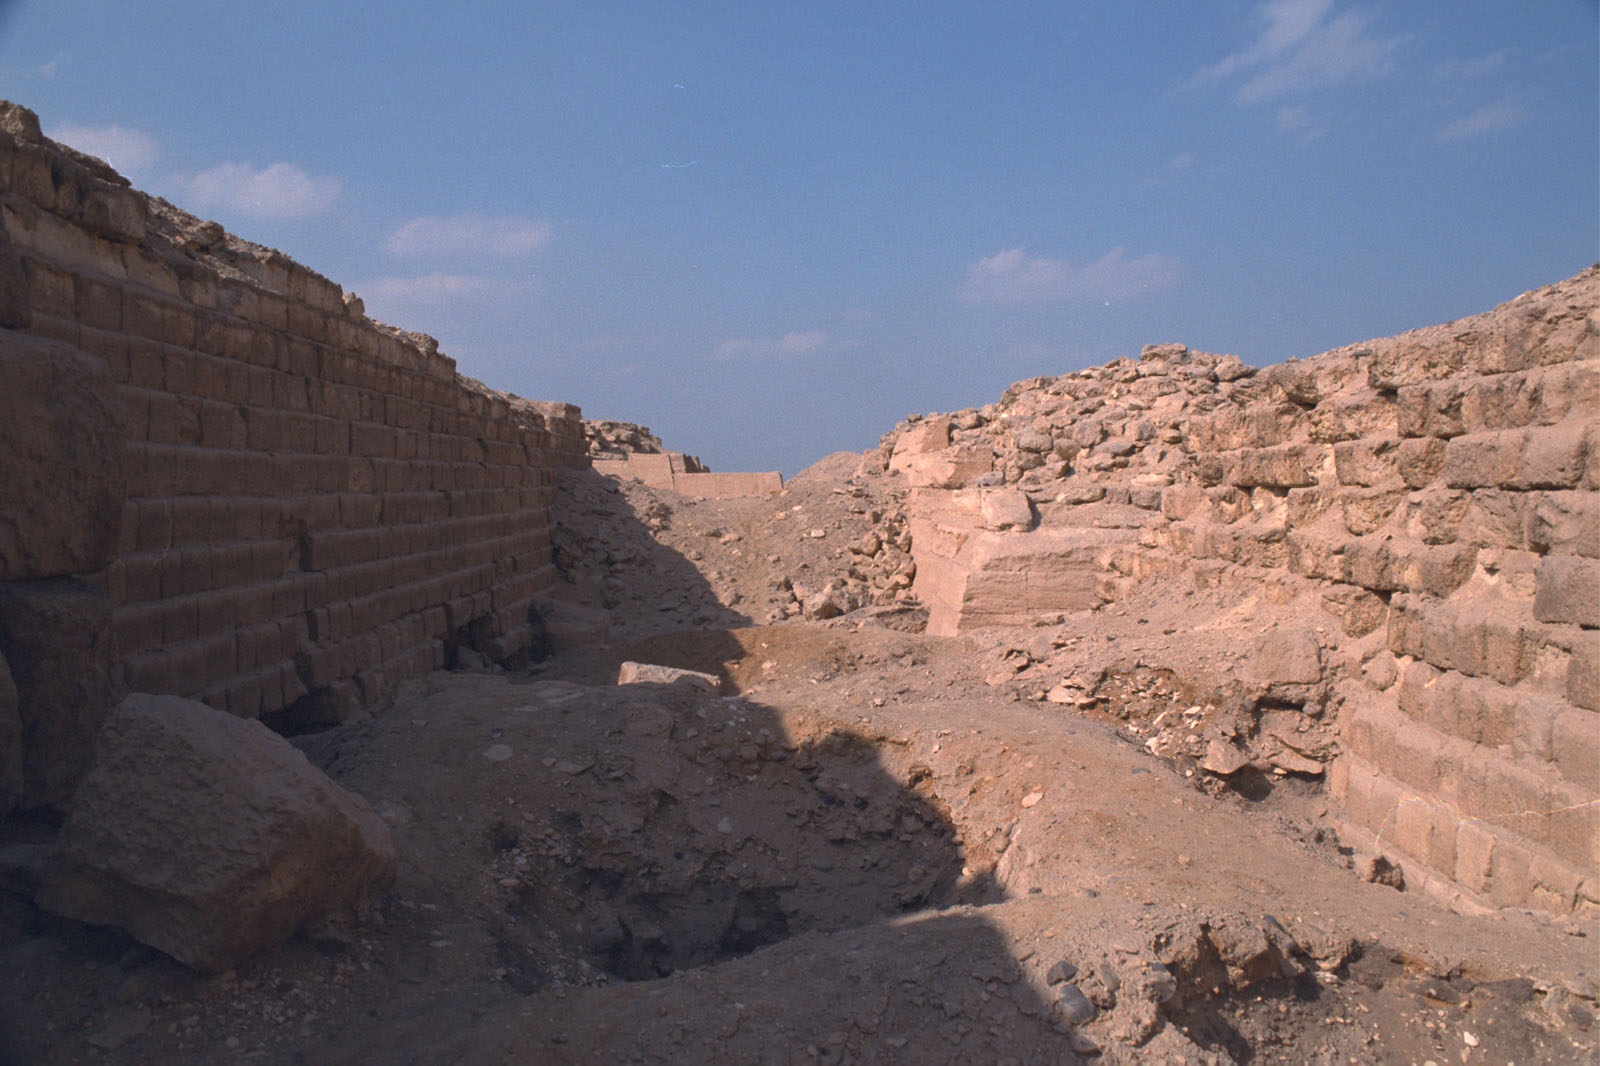 Western Cemetery: Site: Giza; View: G 2100, G 2120, G 2130, G 2104, G 2105